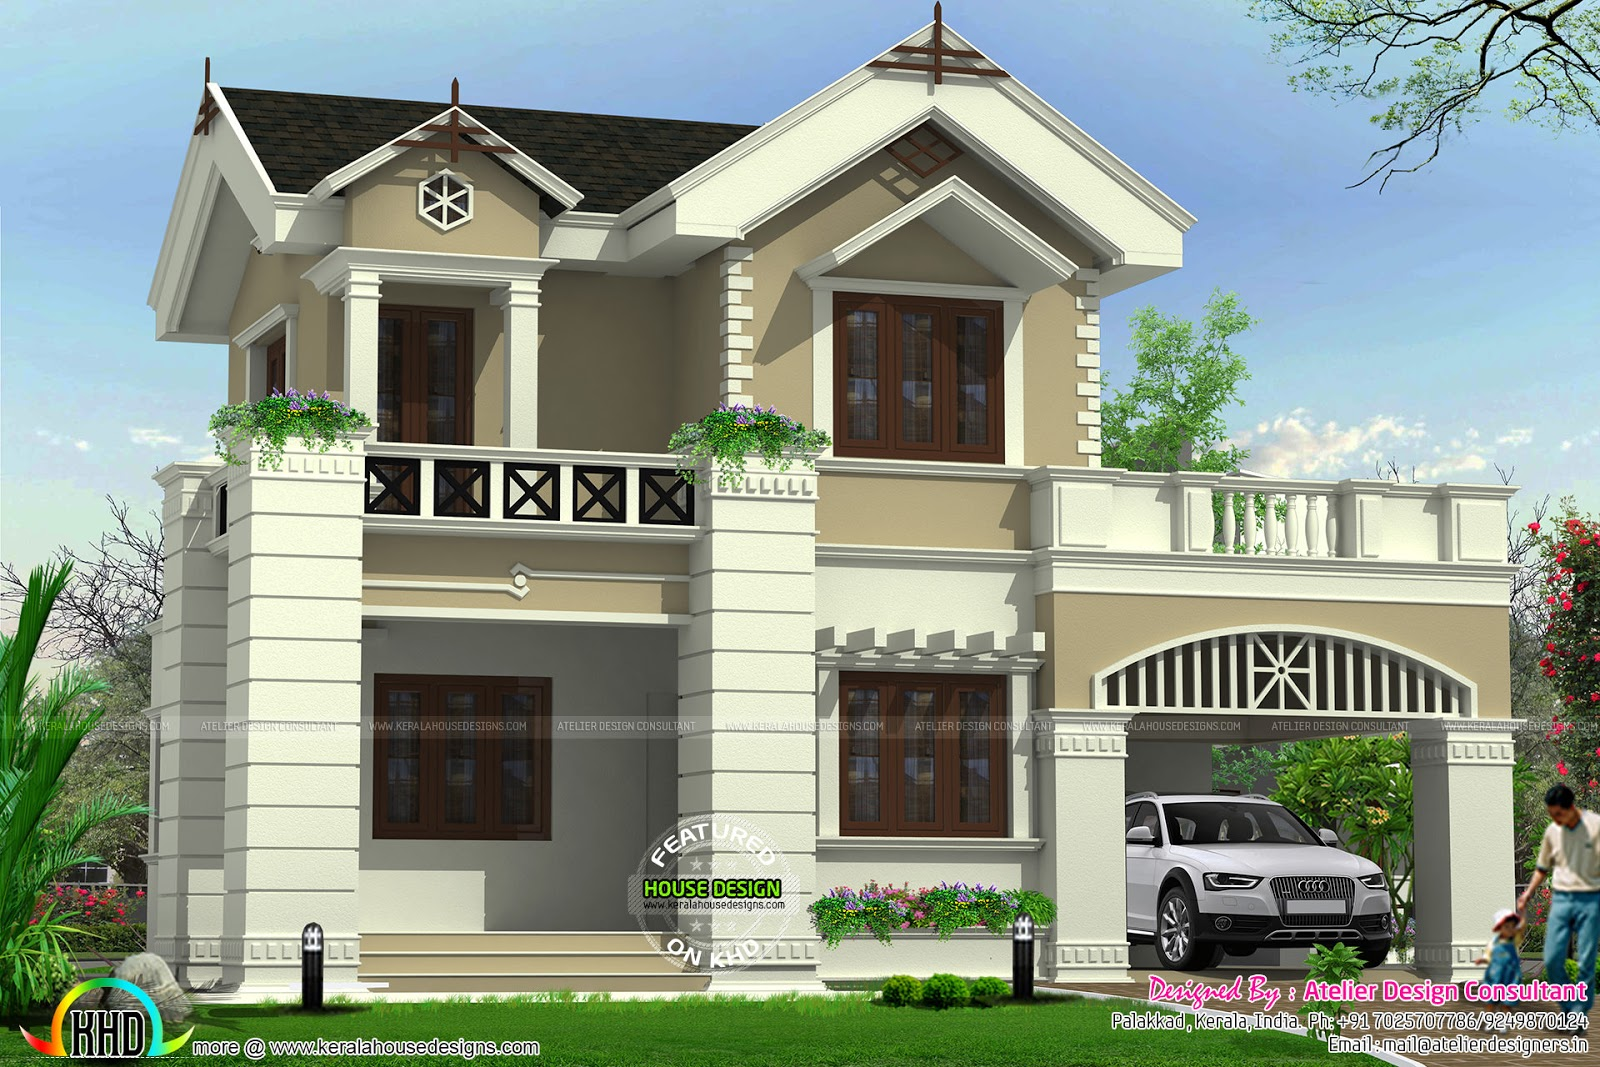 Cute victorian model home kerala home design and floor plans for Homes models and plans